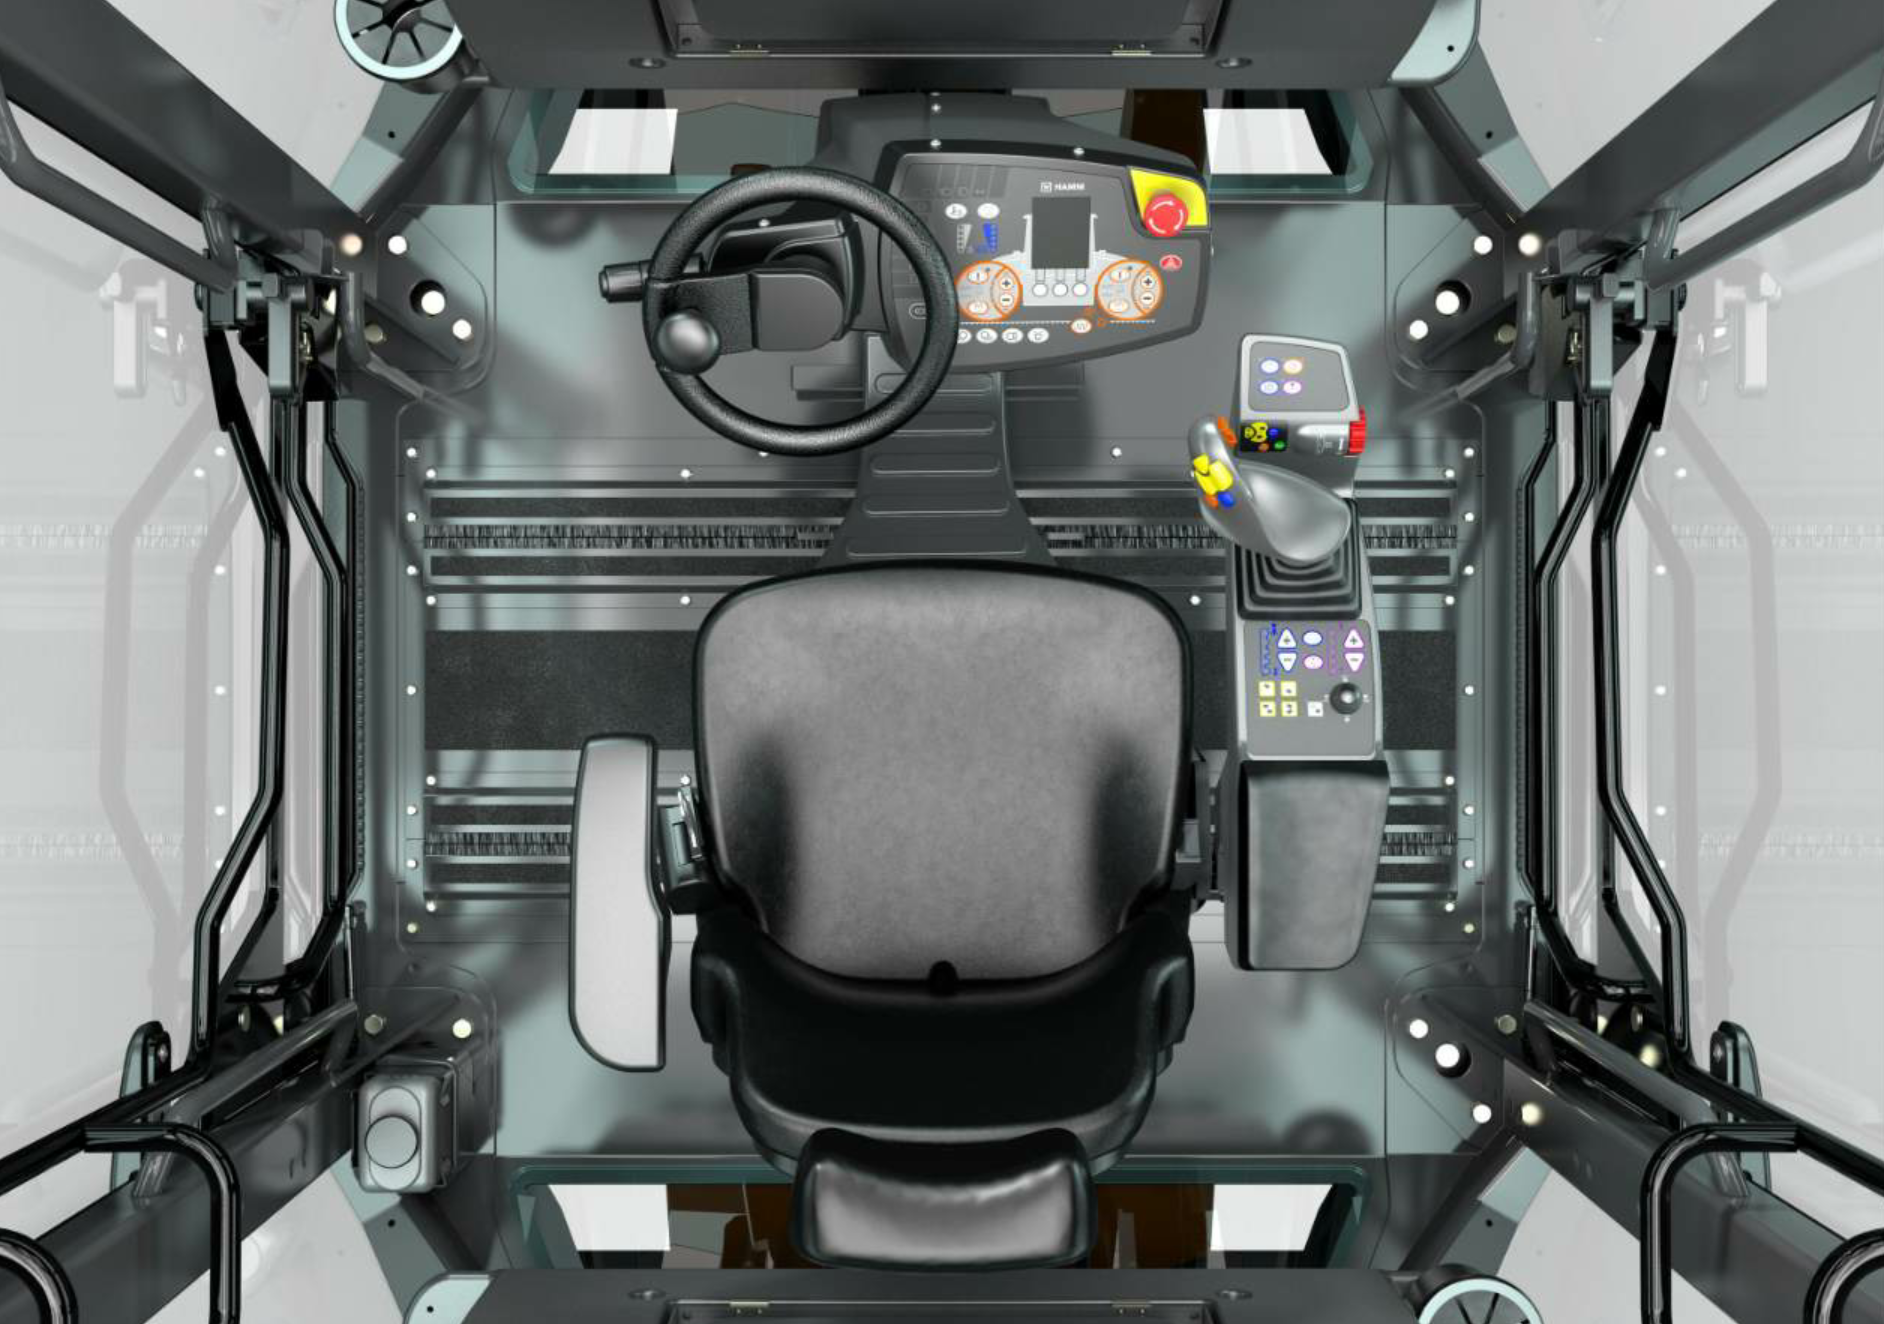 The Hamm Compaction Quality (HCQ) system features a color touchscreen PC with USB interface at the operator's station. The setup in the cab is designed for operator comfort with steering accomplished via steering wheel and controls via a joystick and armrest. Photo courtesy Hamm, Antioch, Tennessee.